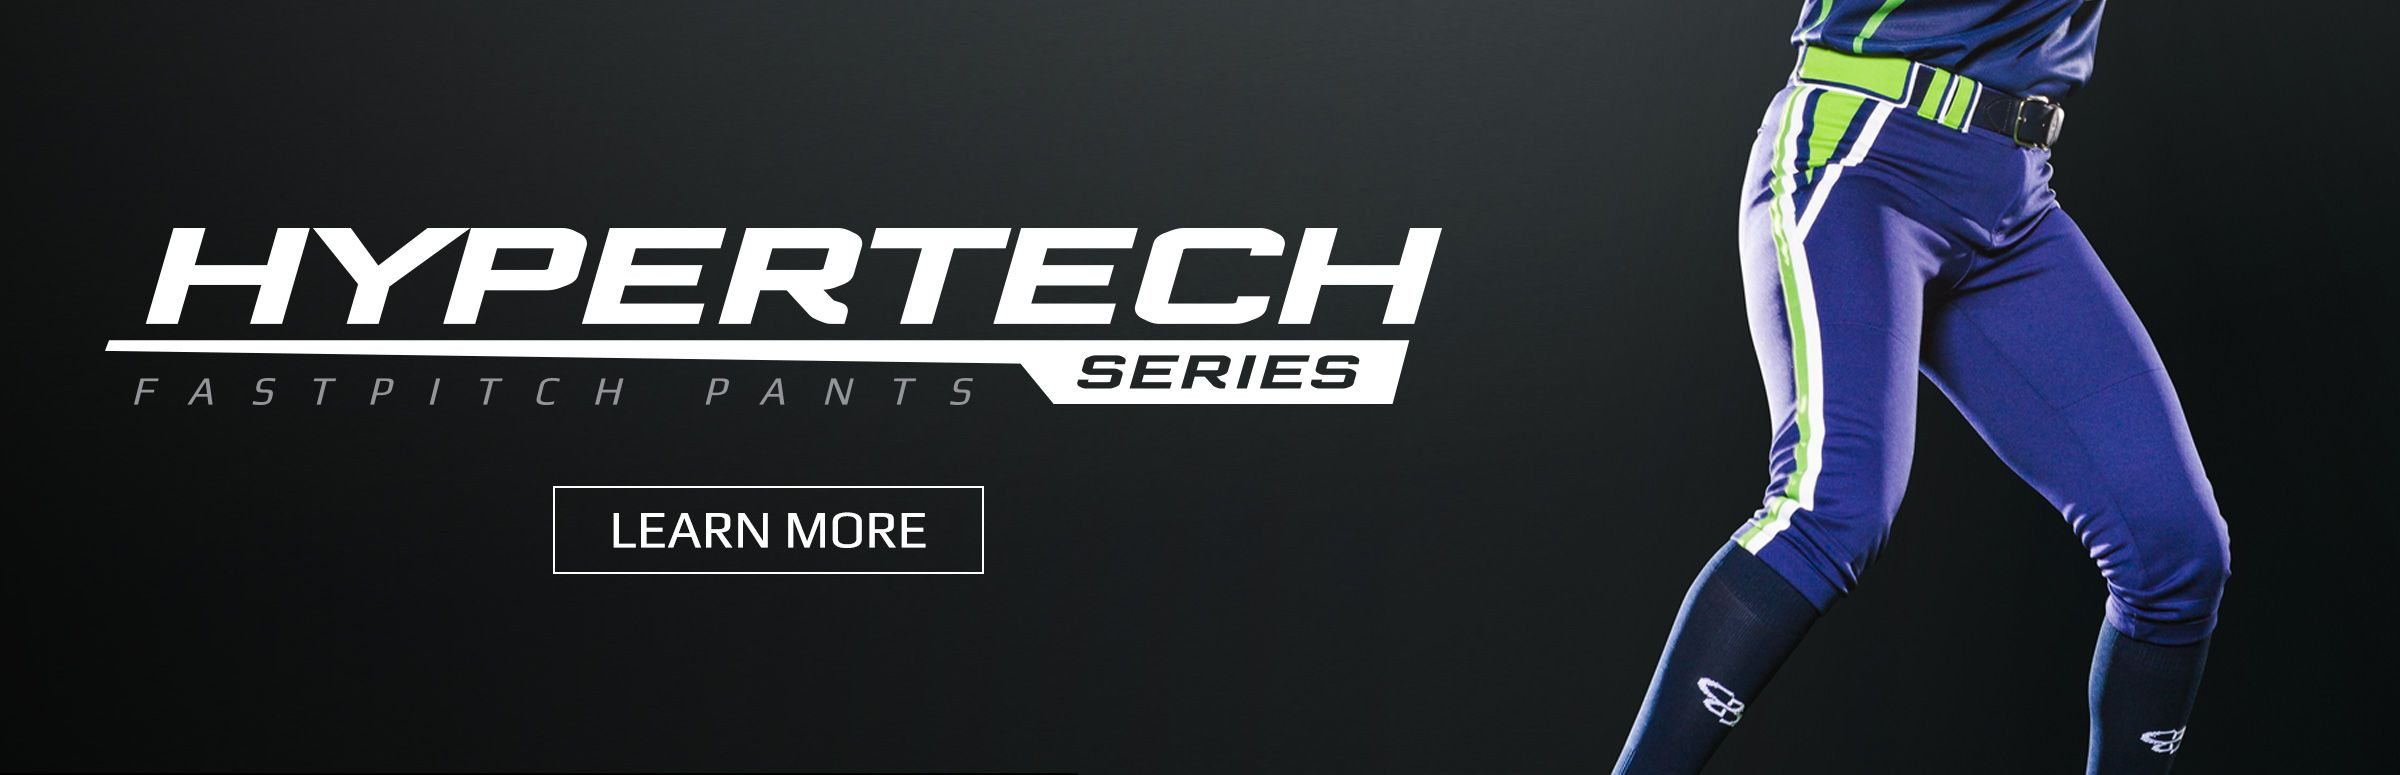 Hypertech Series Fastpitch Pants